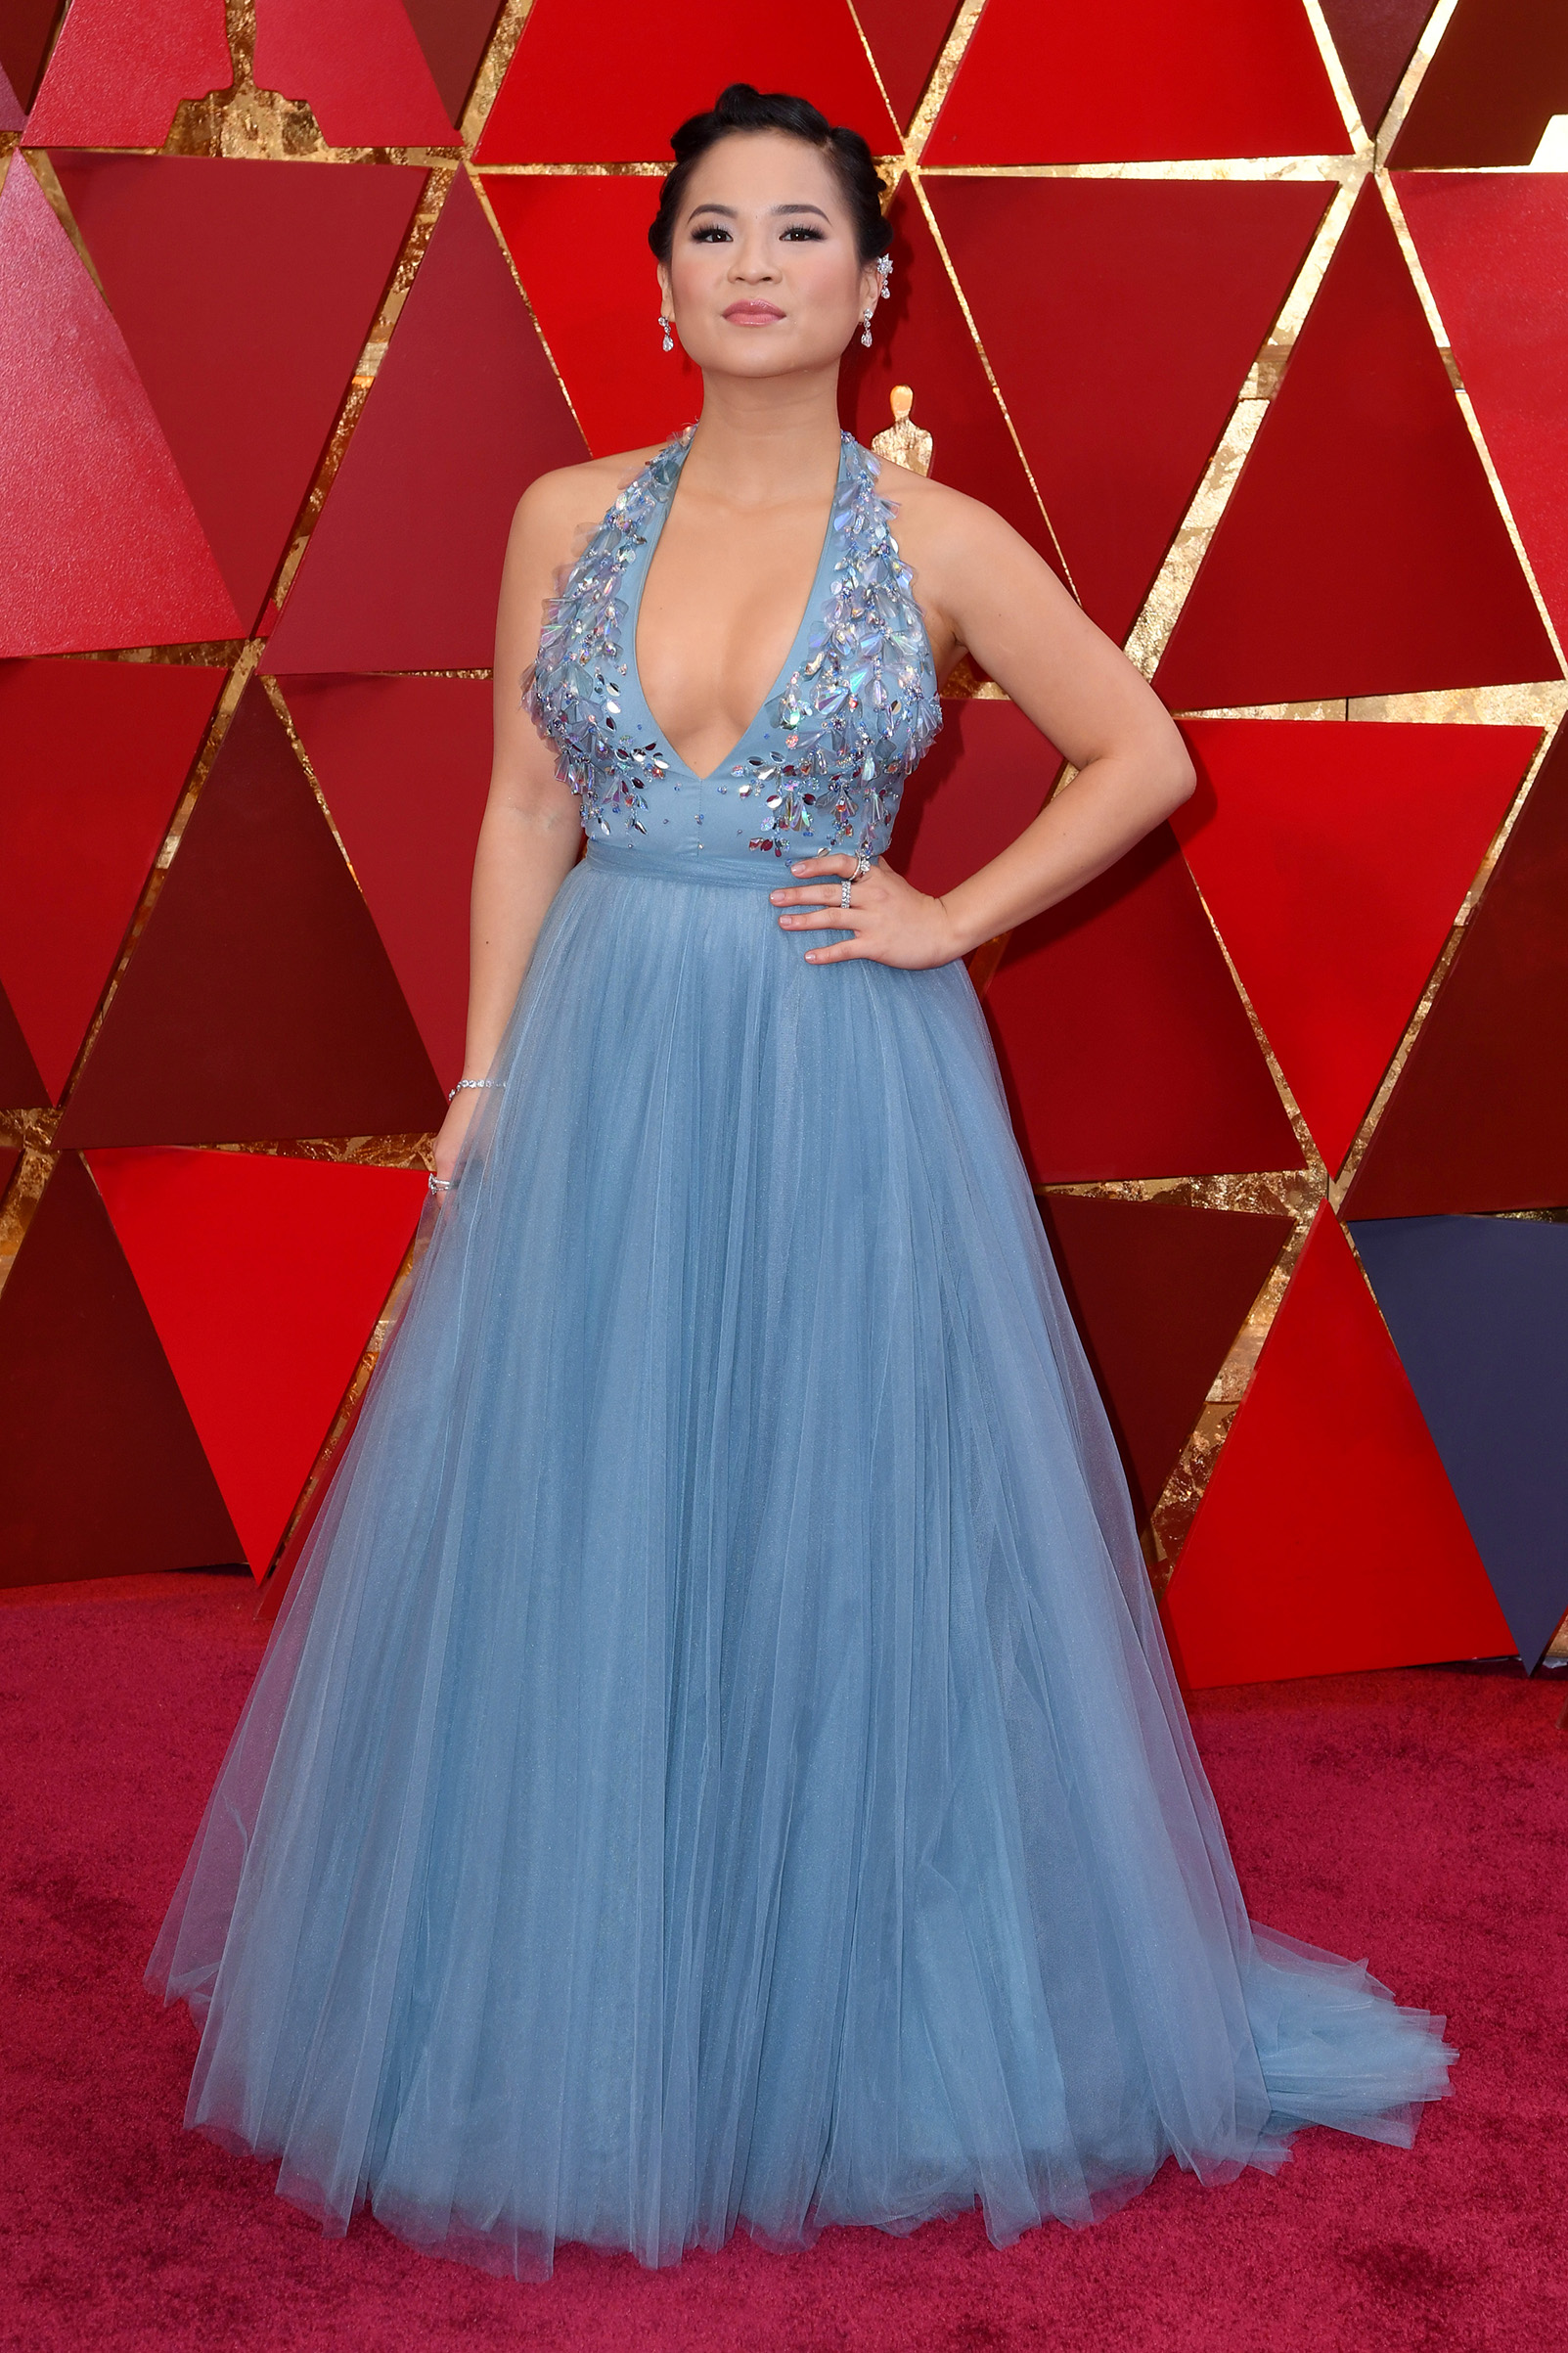 Kelly Marie Tran attends the 90th Annual Academy Awards in Hollywood.